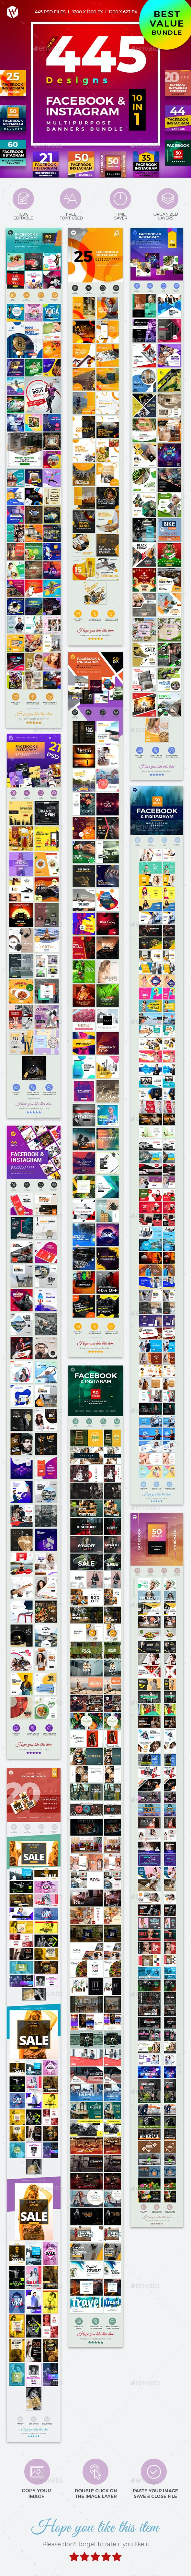 445 Facebook & Instagram Banner Bundle - Social Media Web Elements